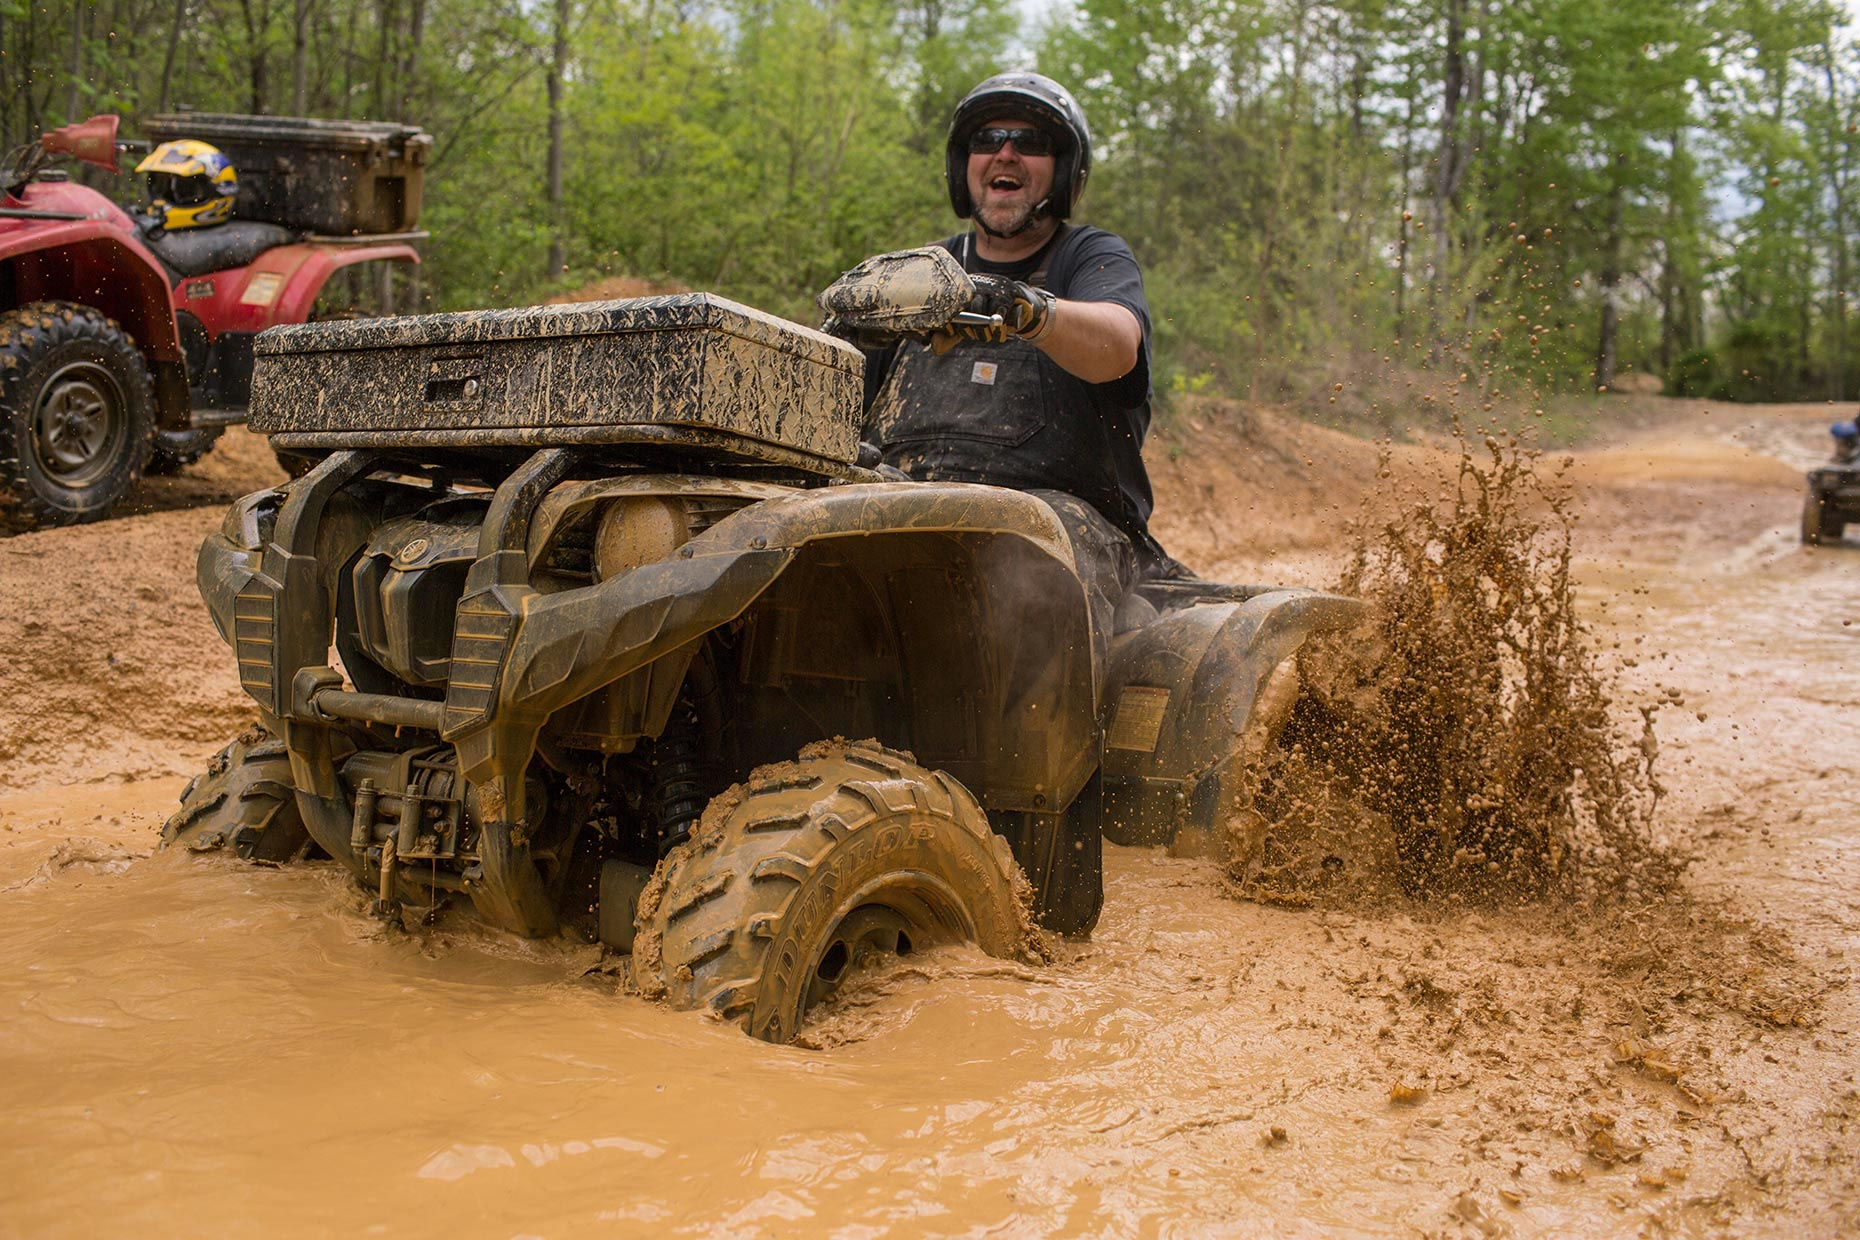 Craig Watson Photo | Brimstone ATV Park, Tennessee